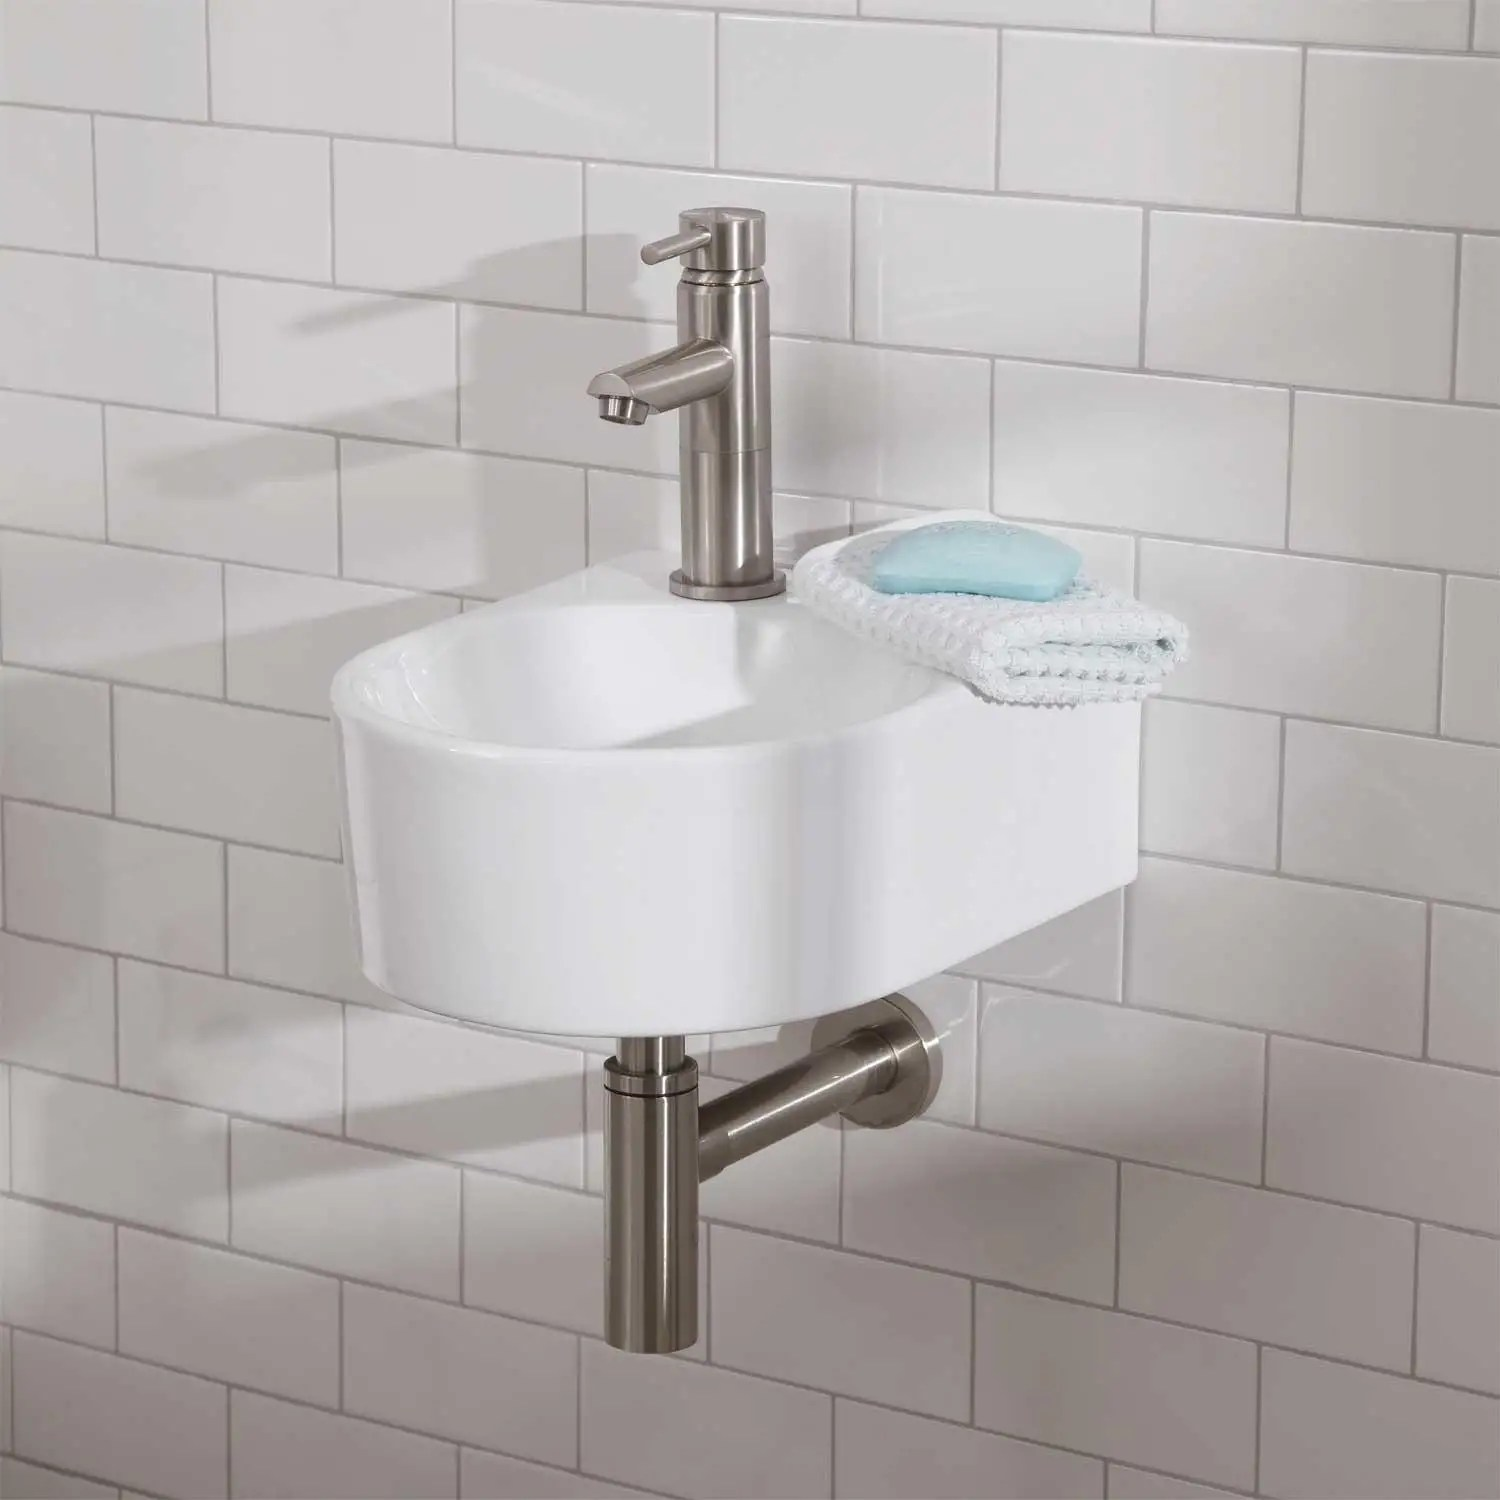 Small Bathroom Vanities and Sinks for Tiny Spaces ... on Small Space Bathroom  id=53097